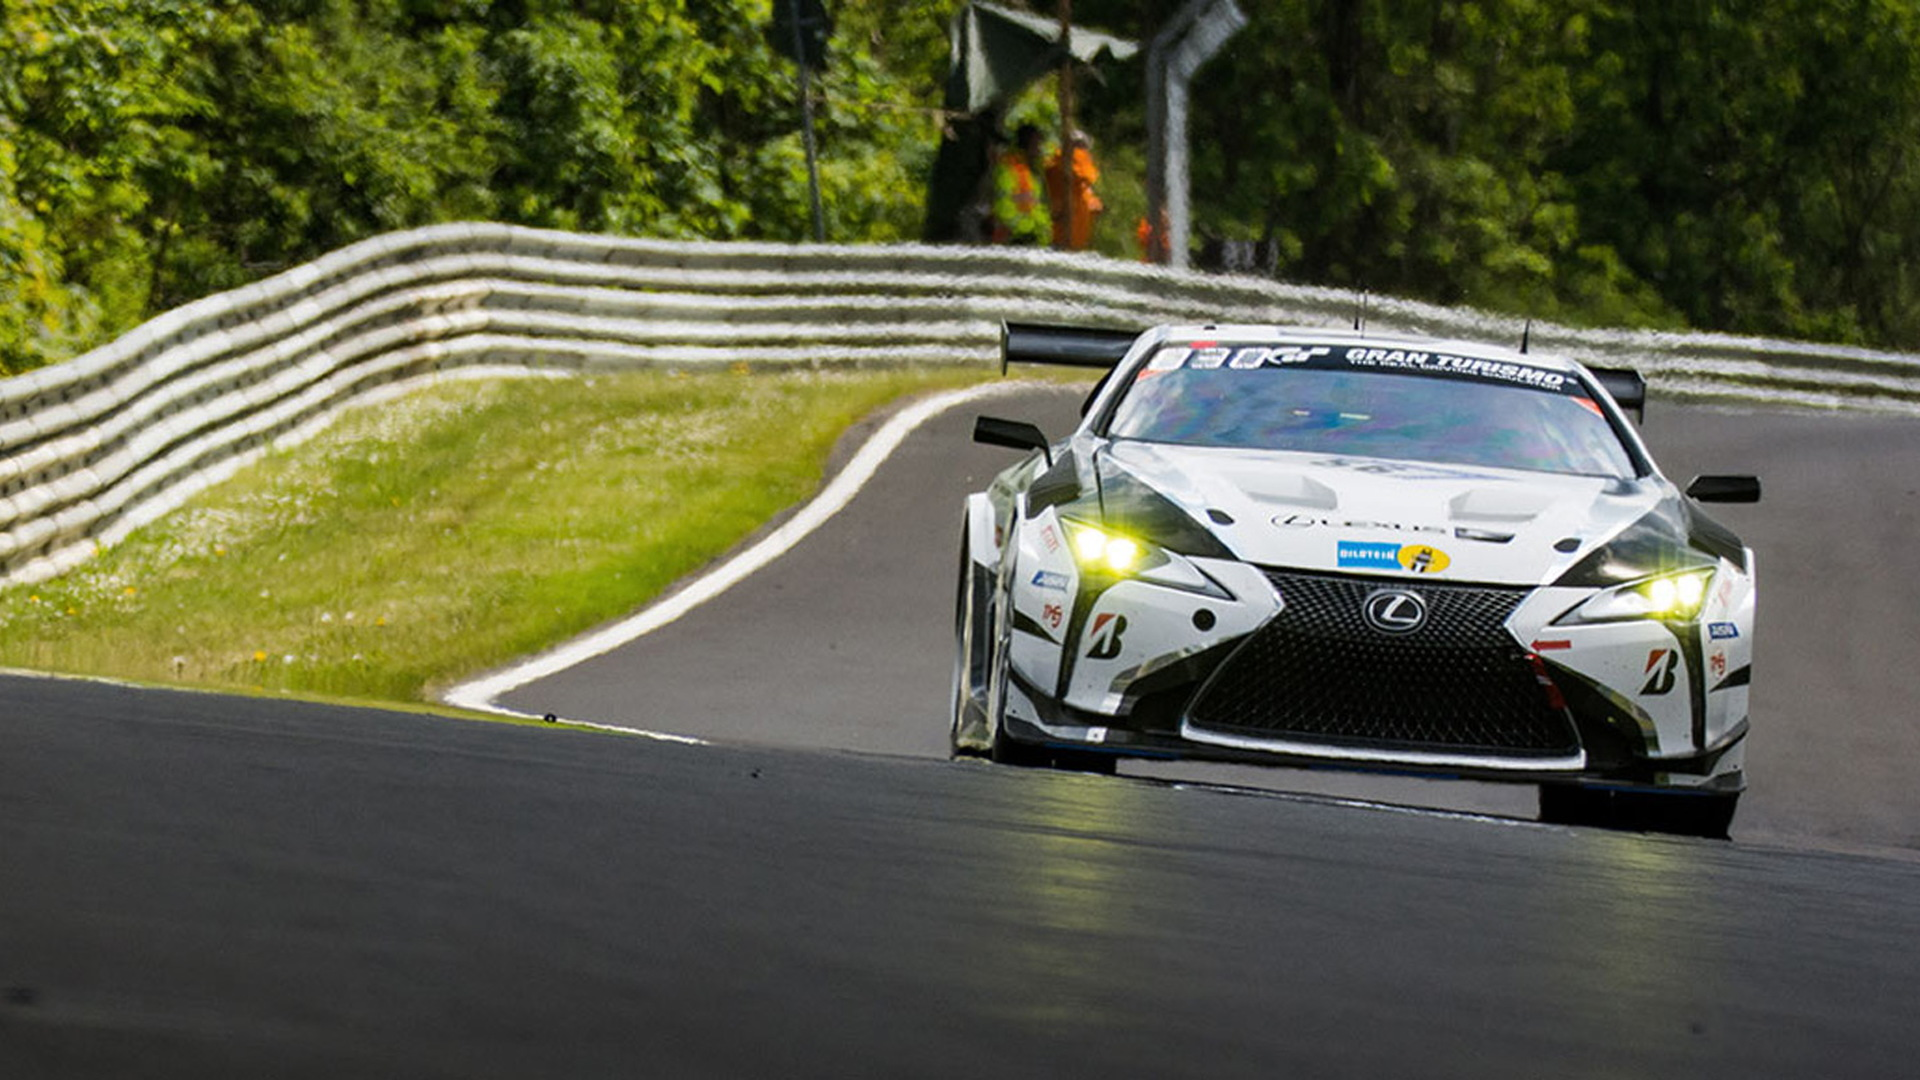 Toyota Gazoo Lexus LC race car in the 2019 24 Hours of Nürburgring